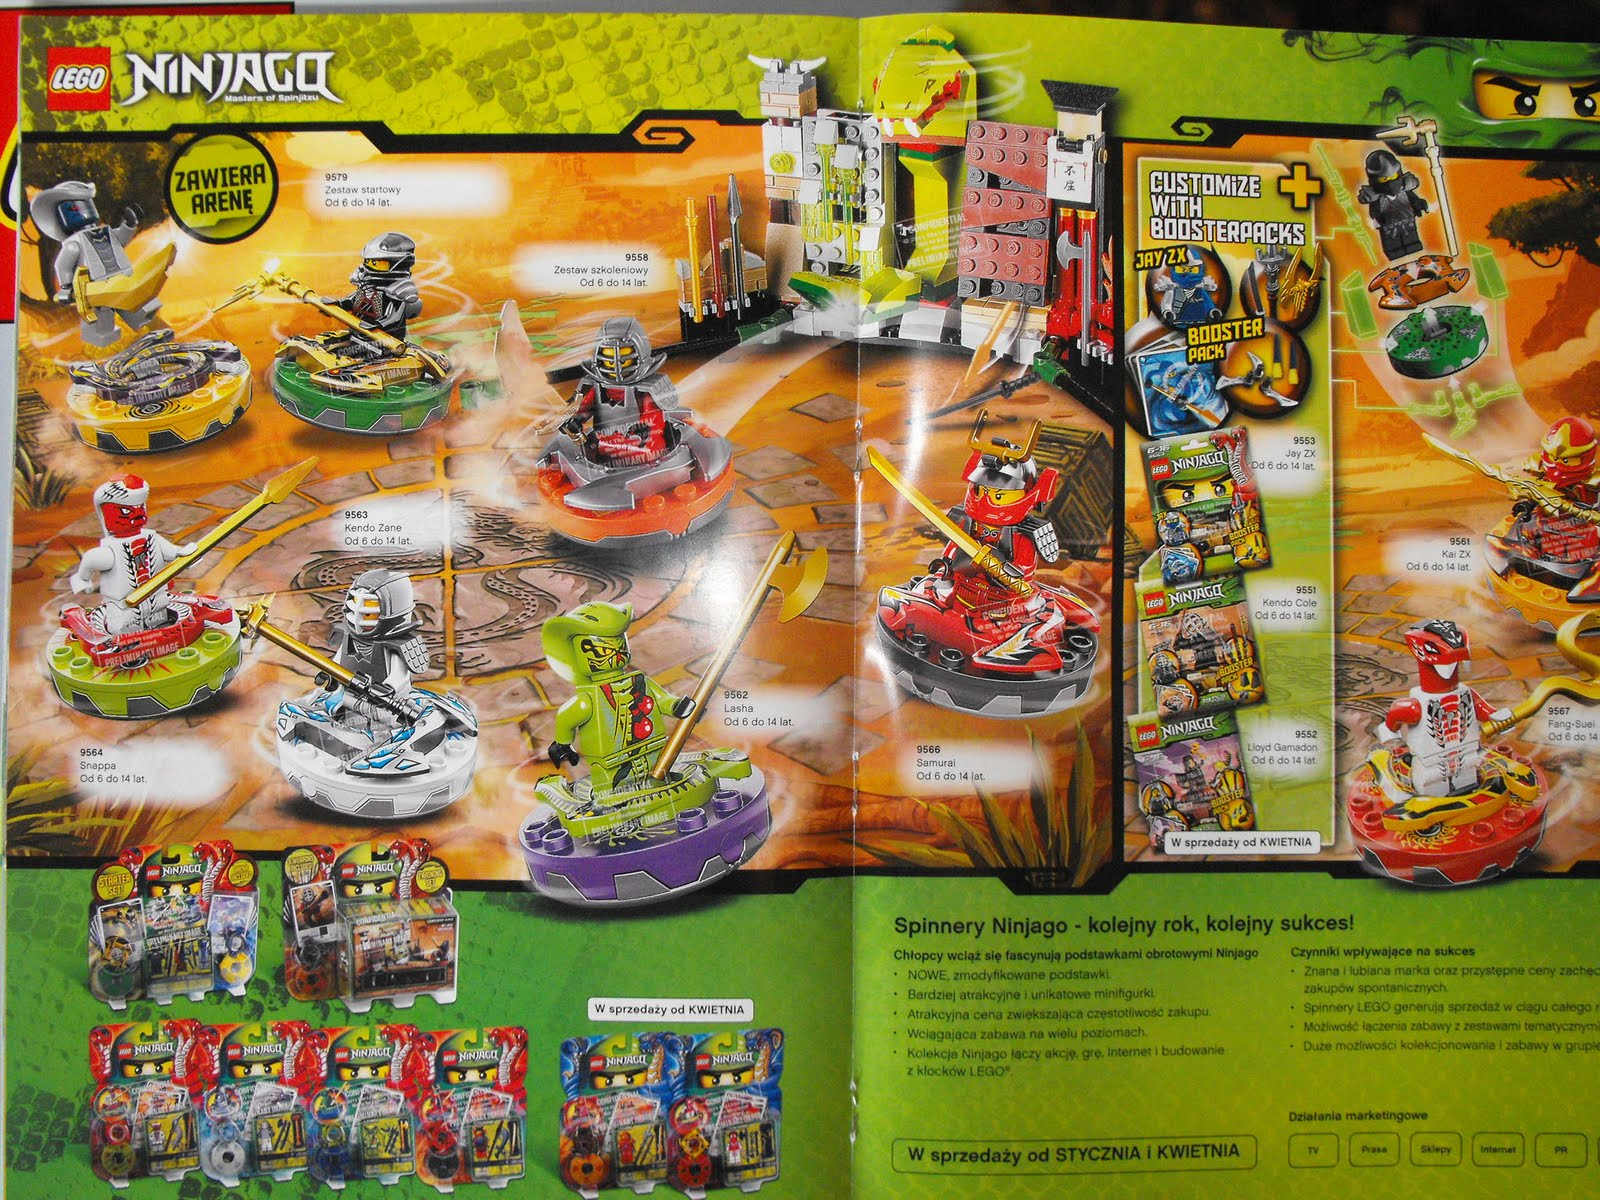 The Brick Brown Fox Lego Ninjago Spinners 2012 Sets